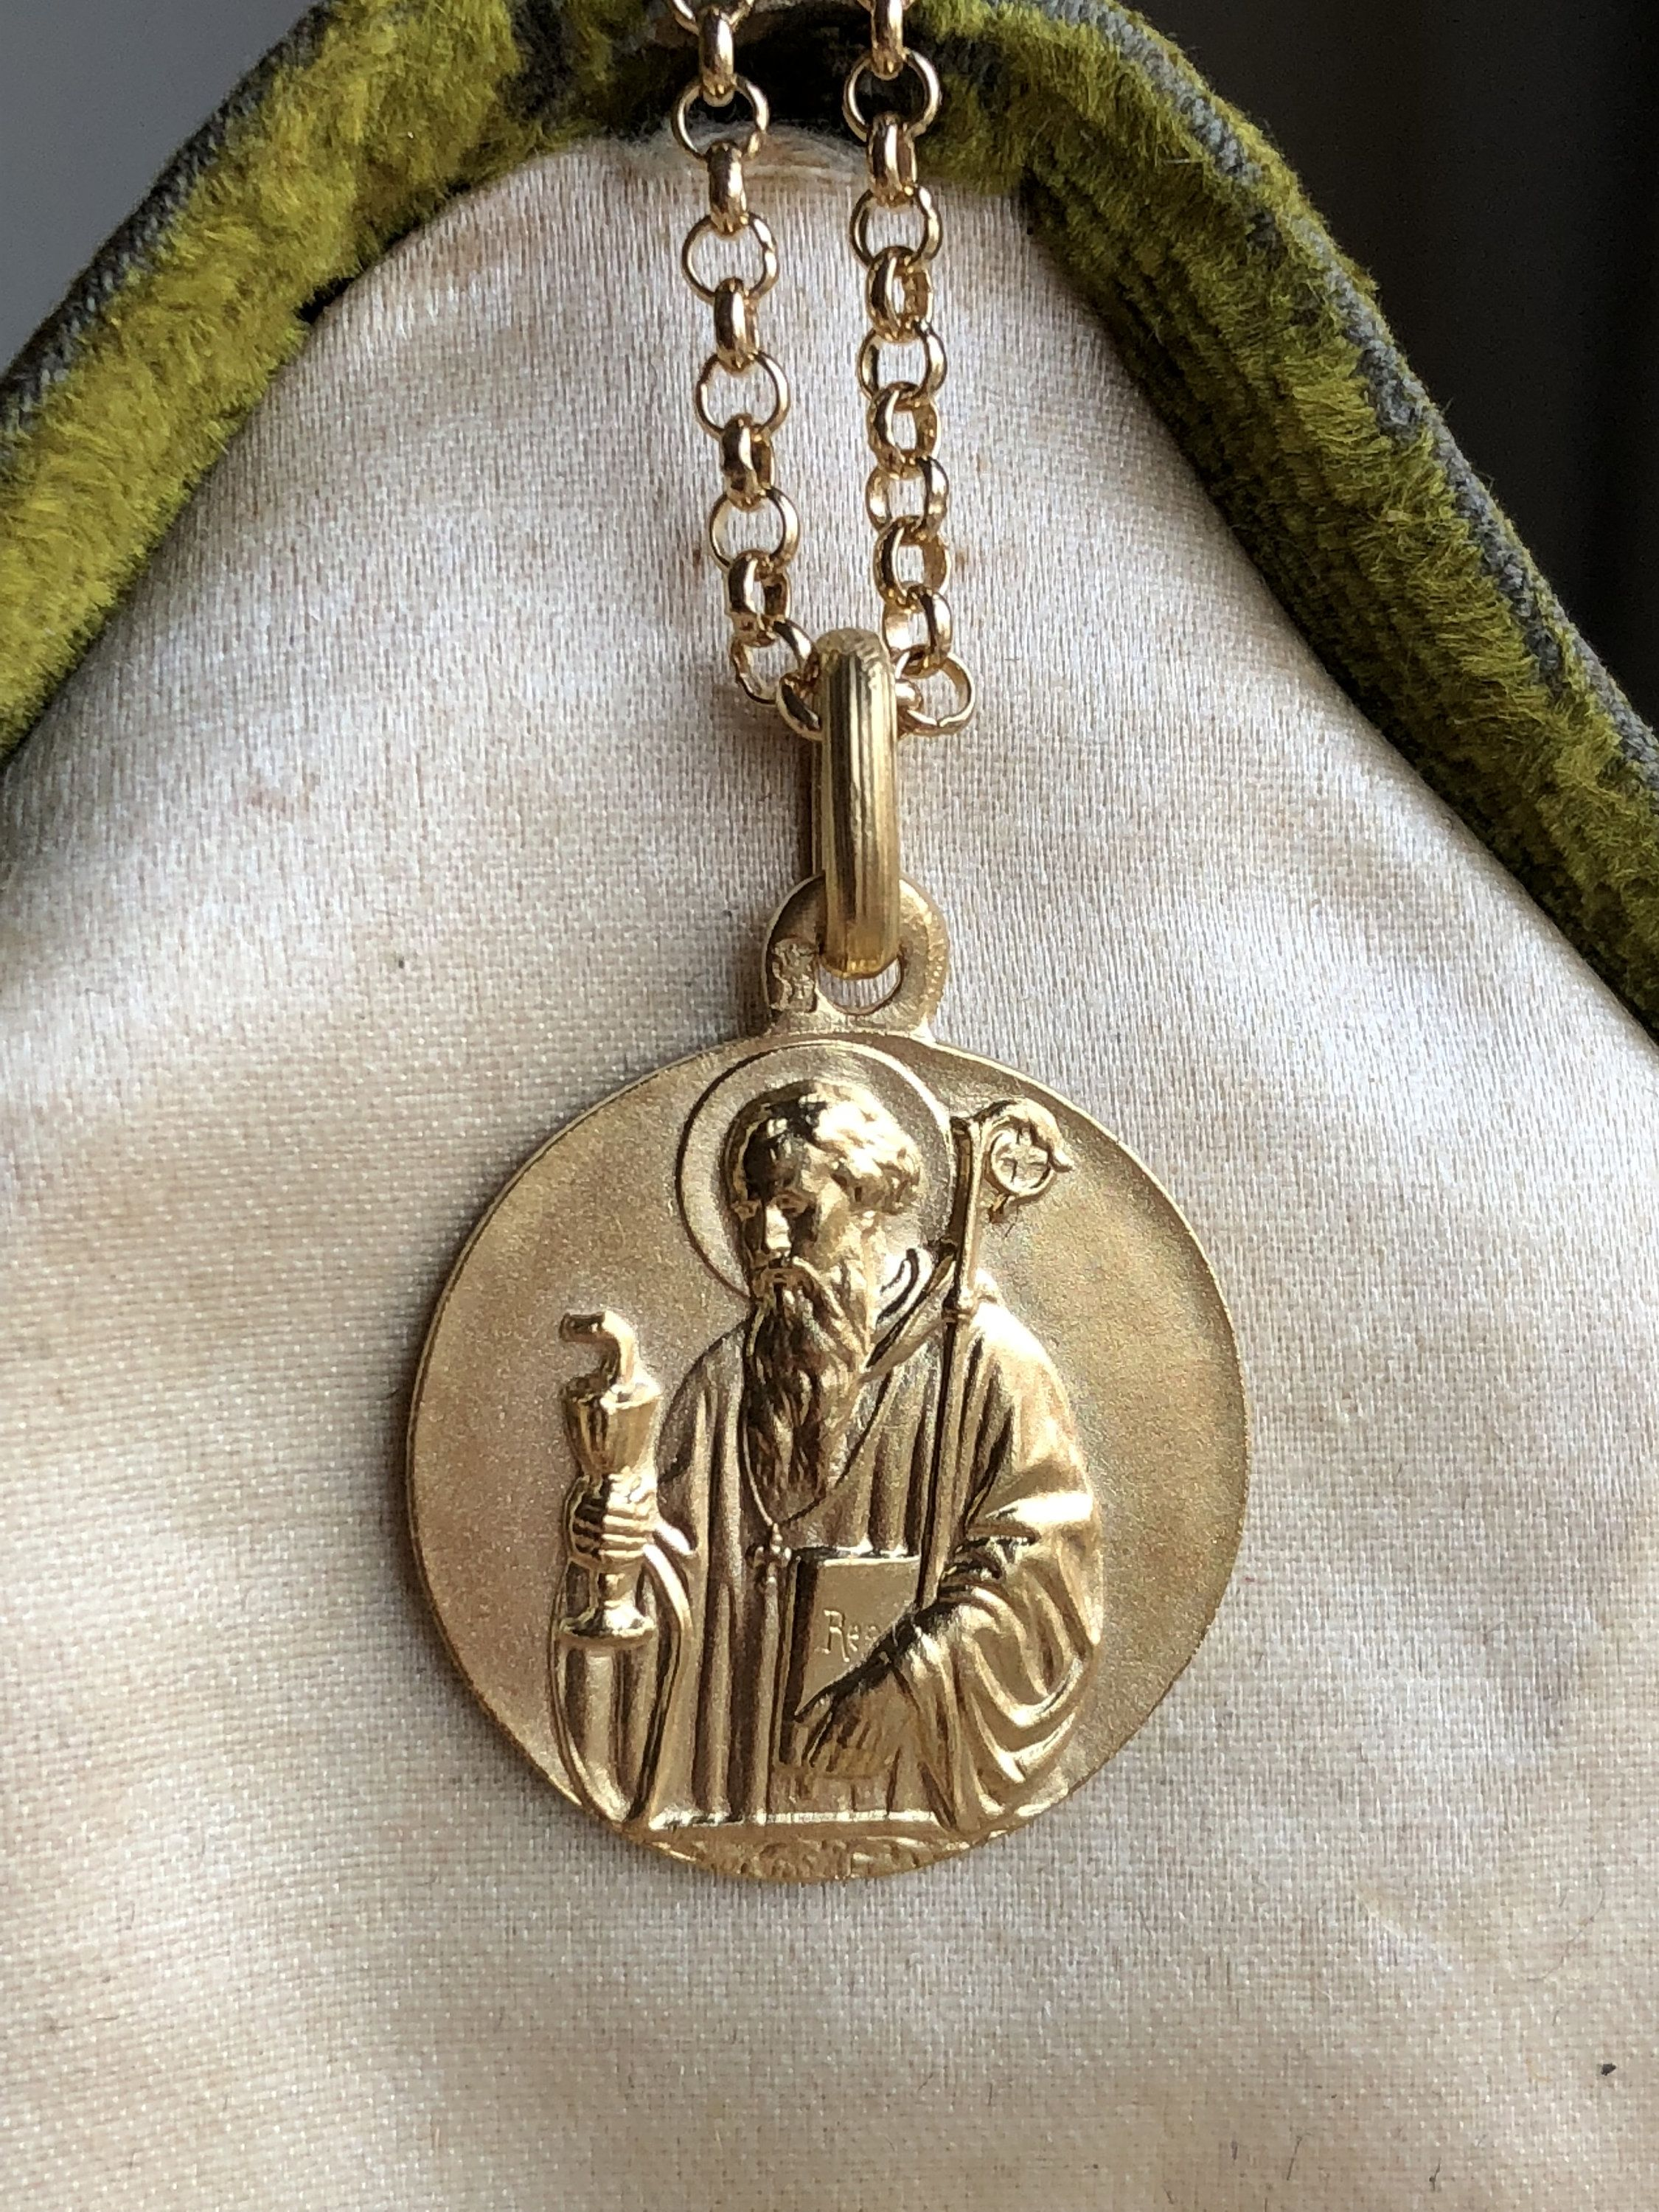 jobe shop medal s peter add on square st benedict product medallion owner item saint nicholas silver